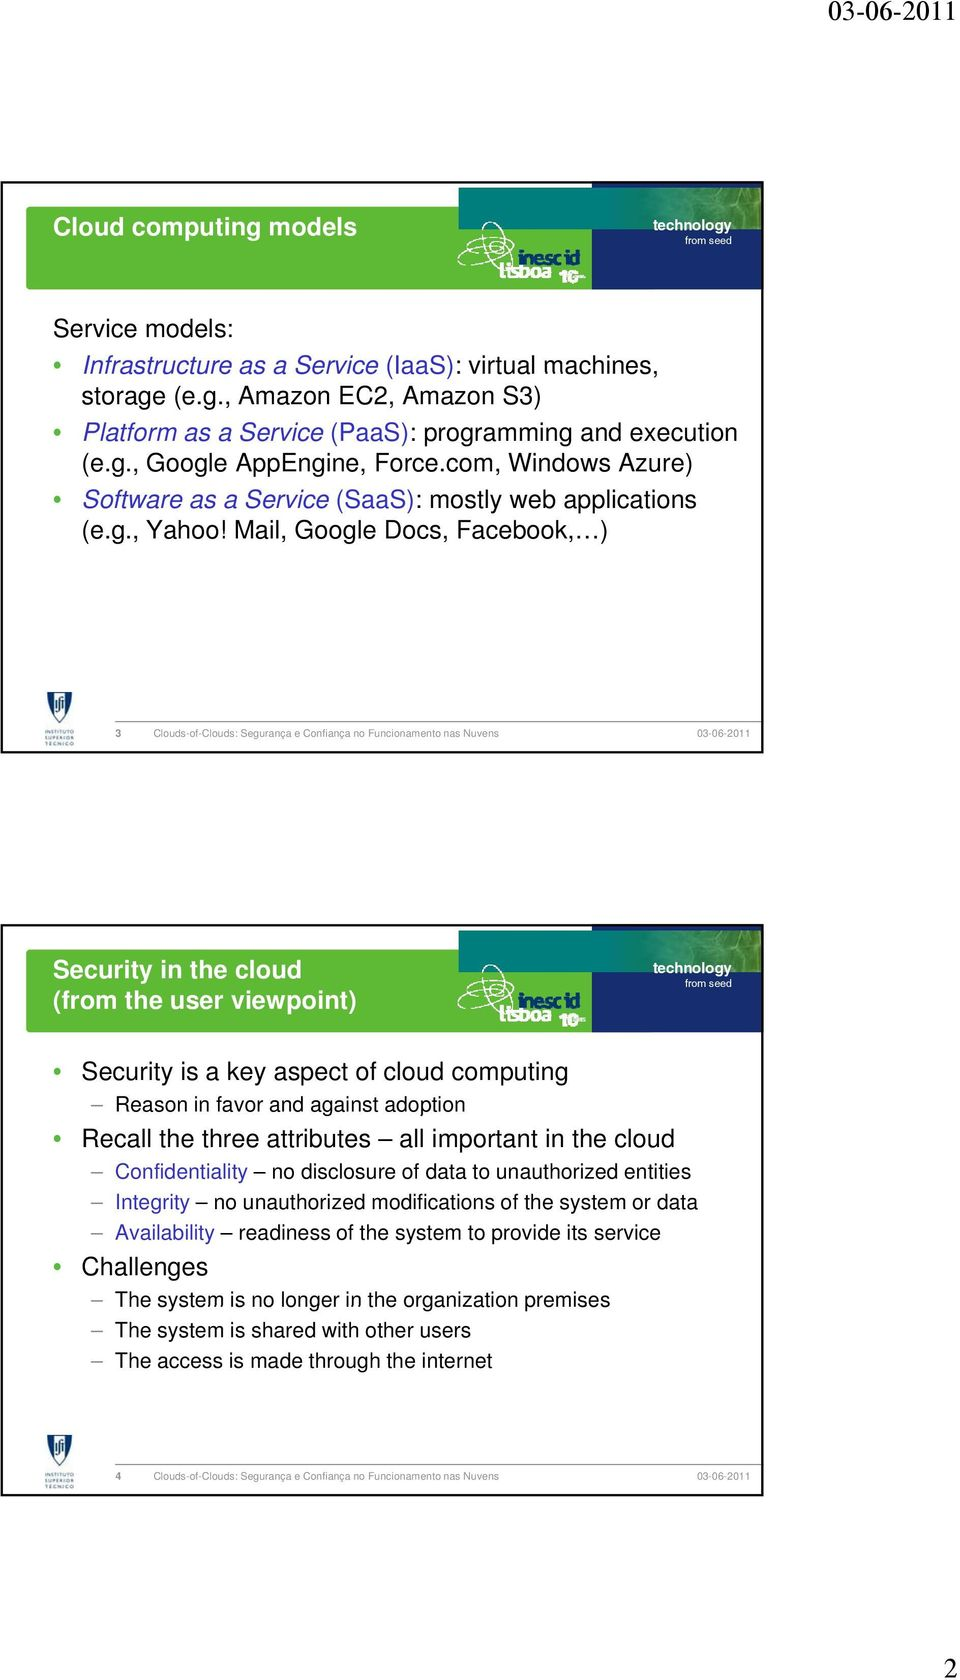 Mail, Google ocs, Facebook, ) 3 Security in the clou (from the user viewpoint) Security is a key aspect of clou computing Reason in favor an against aoption Recall the three attributes all important